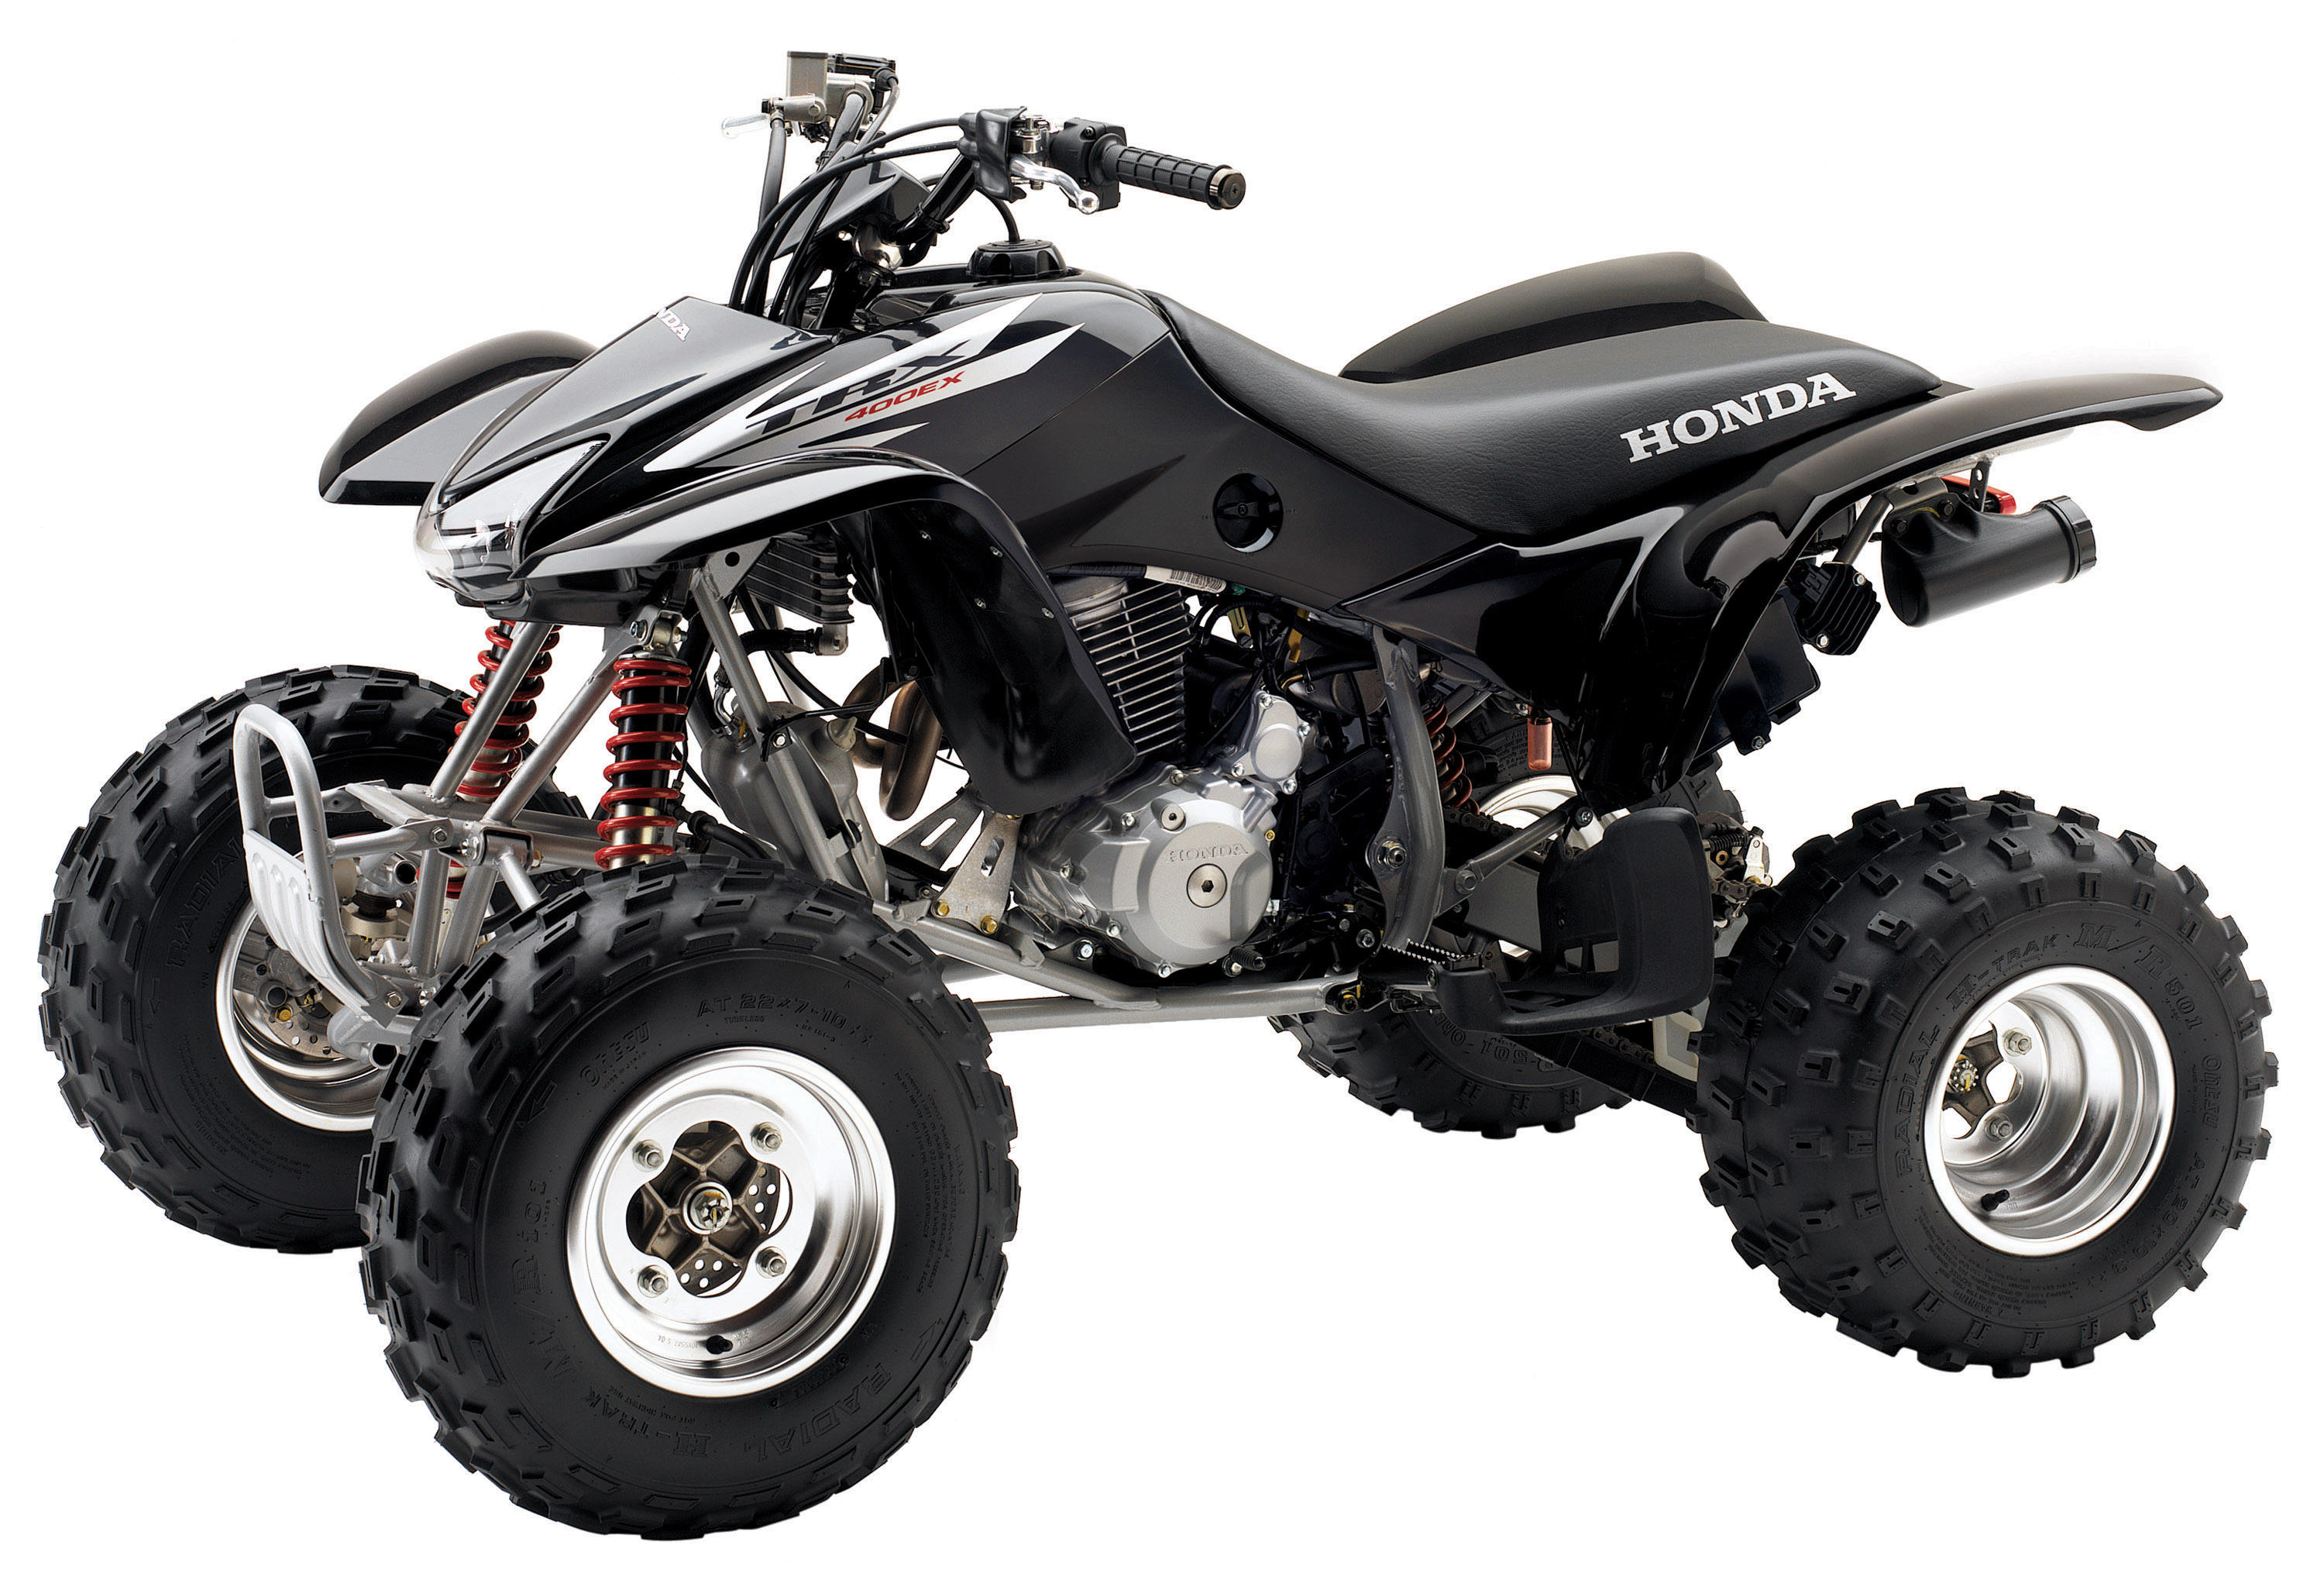 2006 Honda TRX 400 EX | Top Speed. »